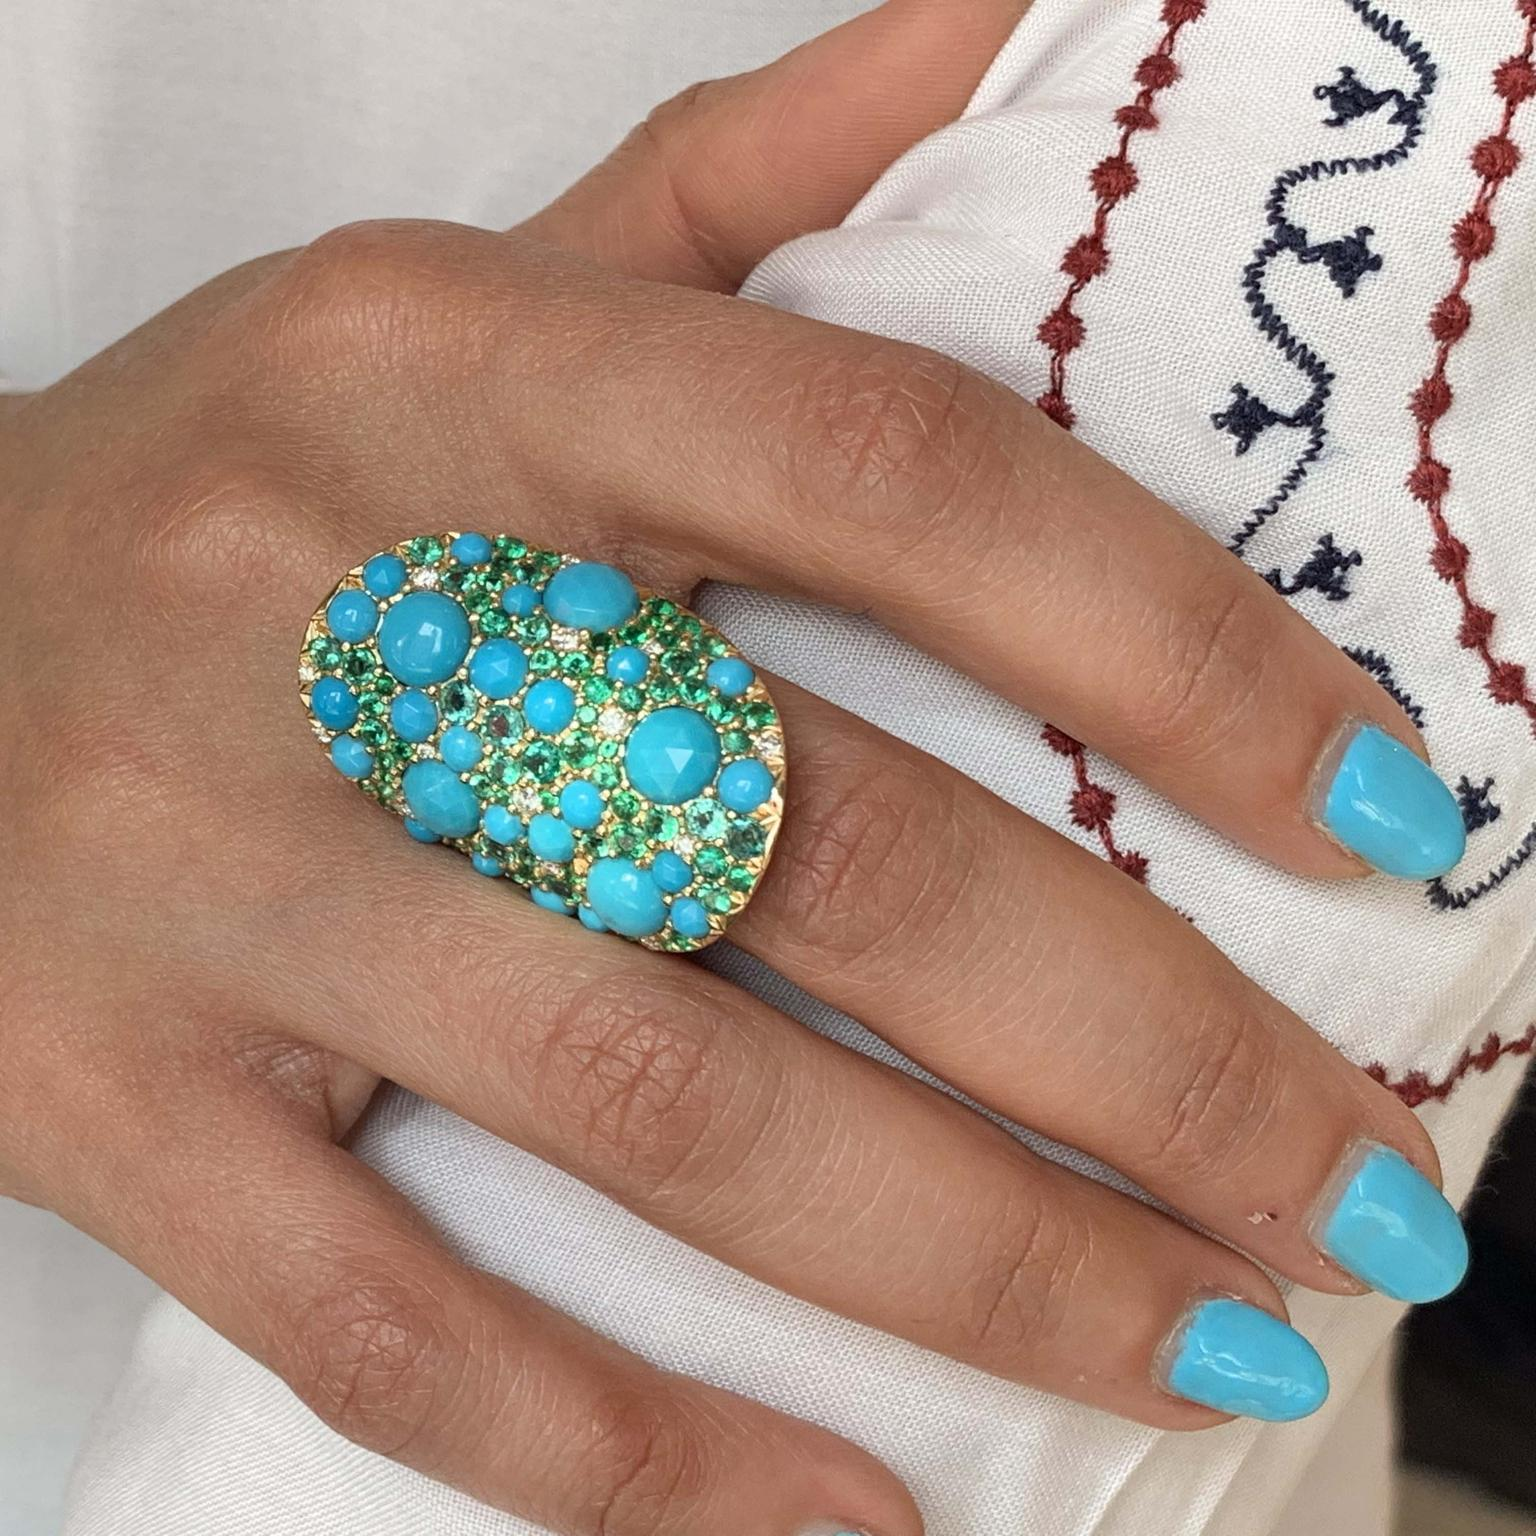 Turquoise Vault ring from Robinson Pelham